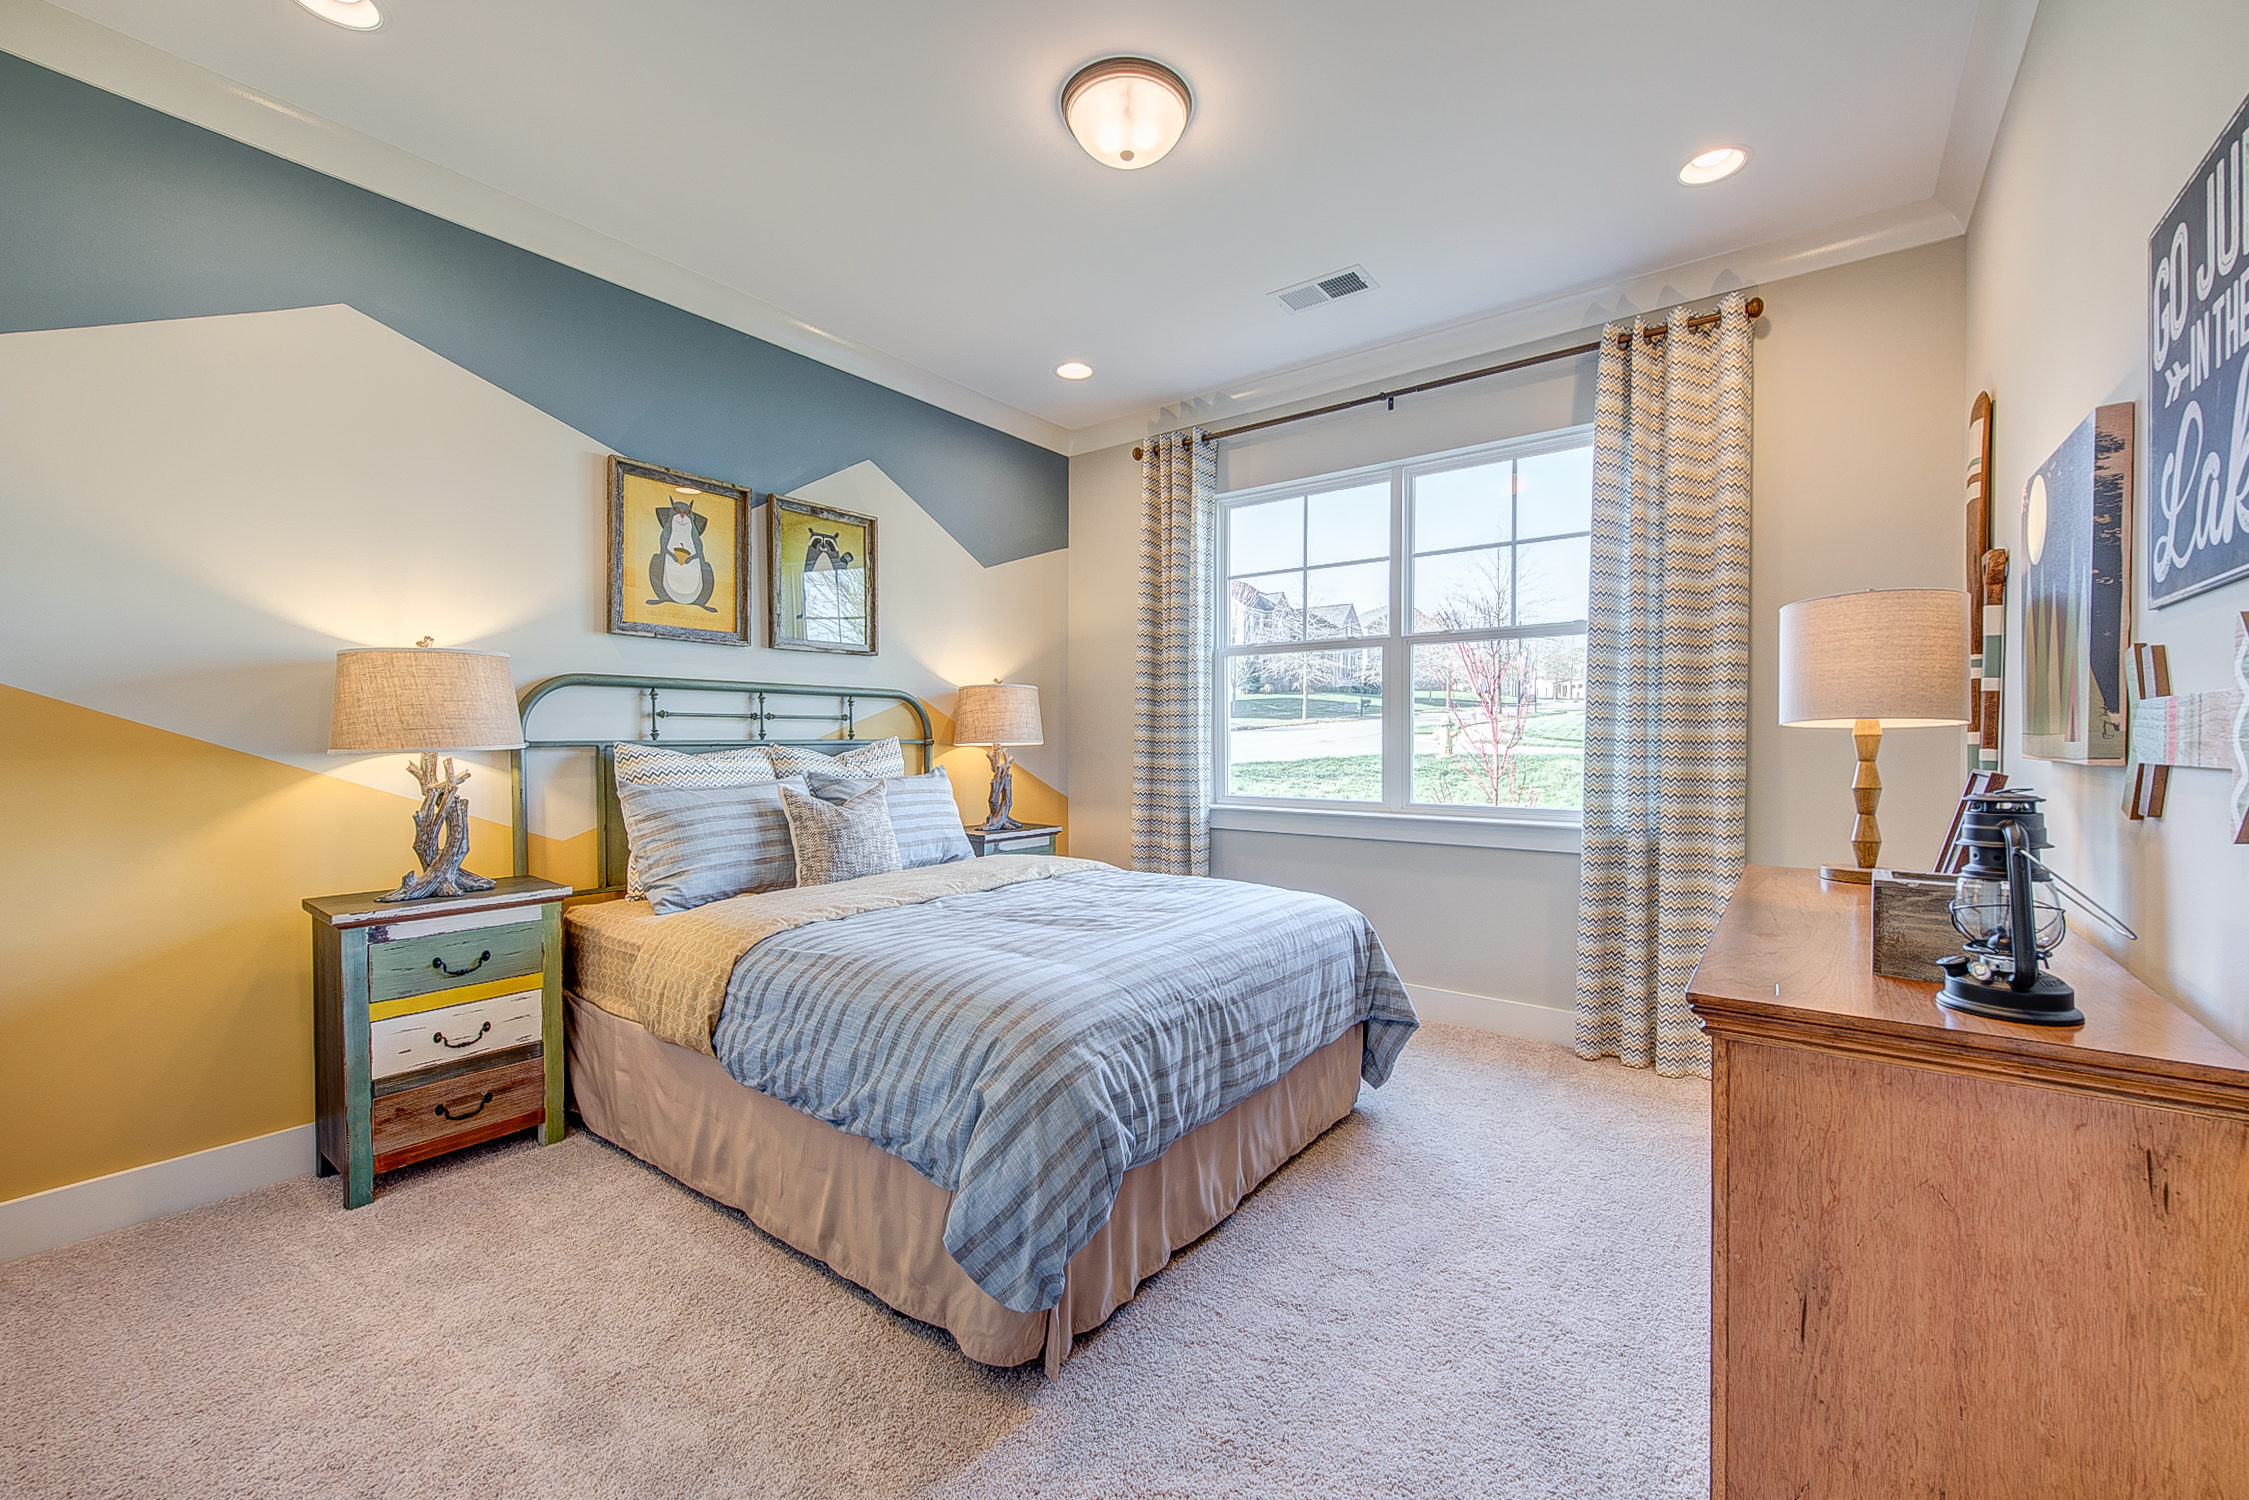 104-bushney-loop-mooresville-print-008-1-bedroom-2-2249x1500-300dpi_32914681474_o.jpg